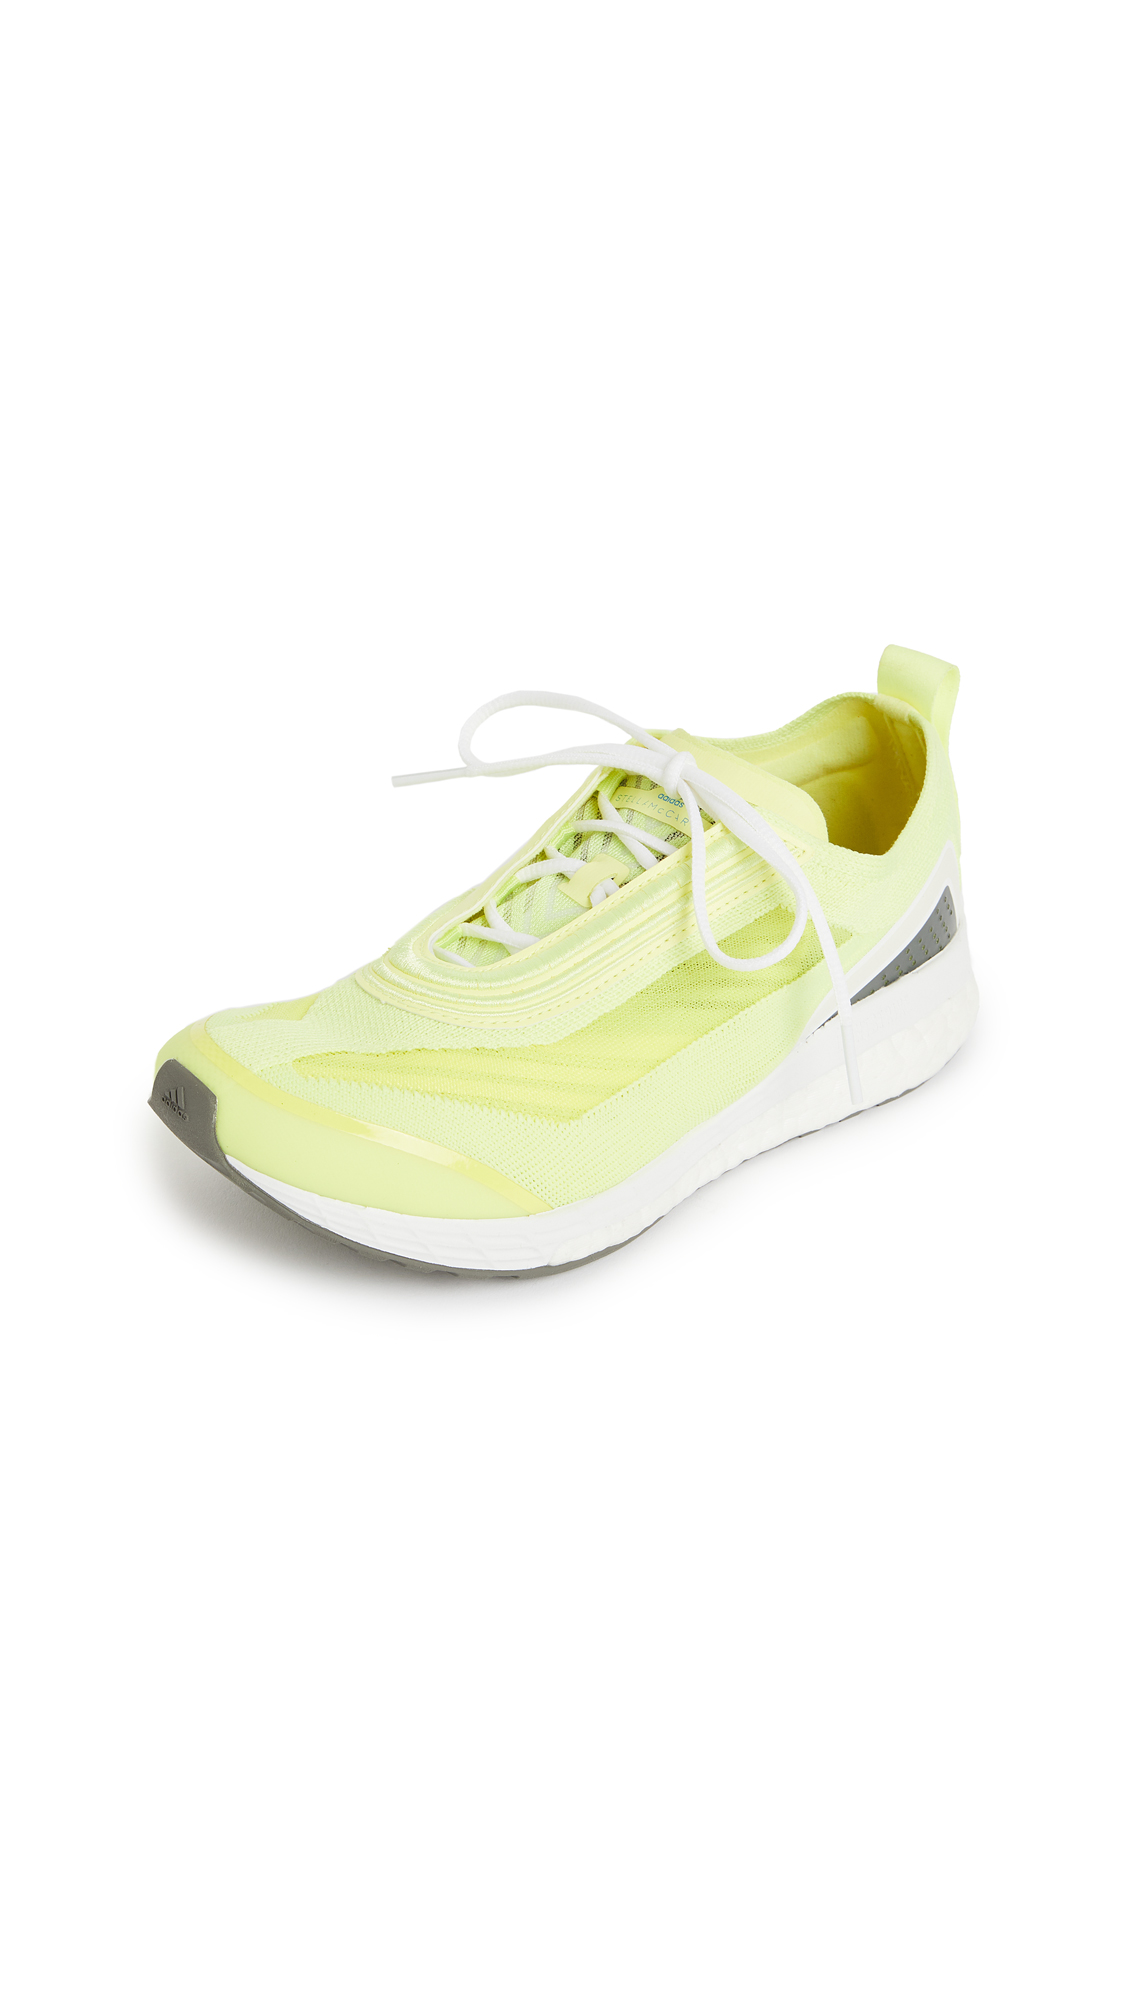 adidas by Stella McCartney Boston S. Sneakers